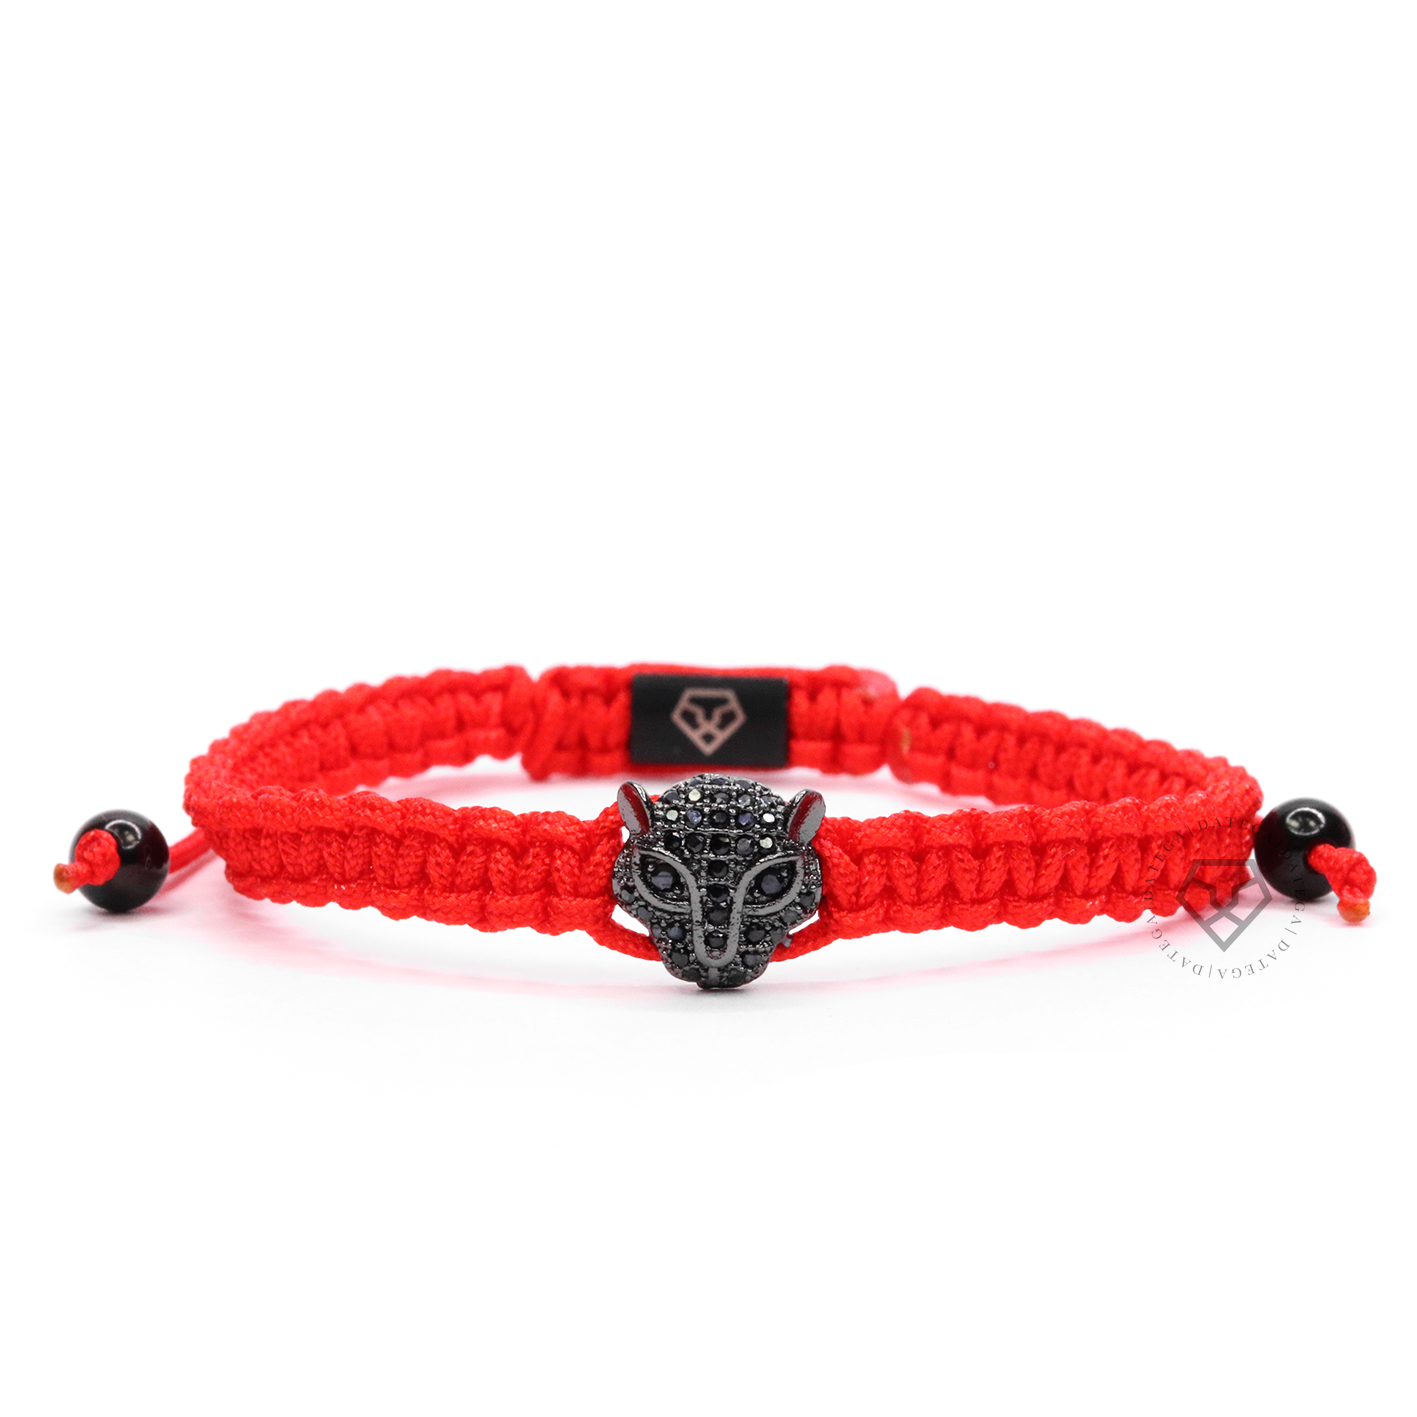 Jaguar Rhodium Black Cz - Red Rope